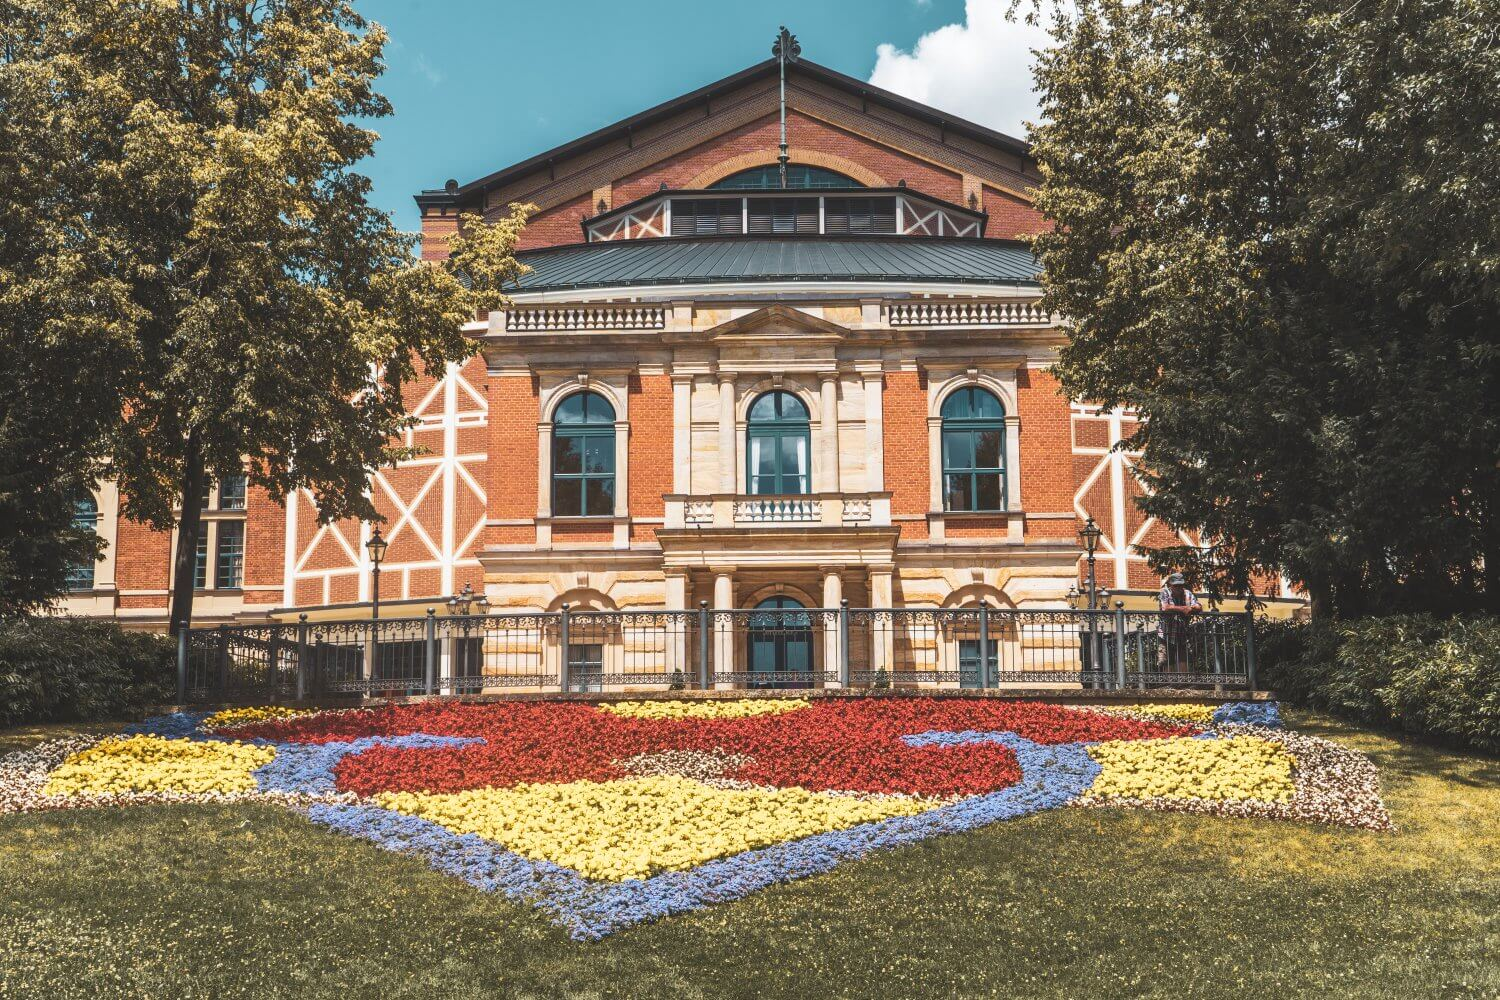 Wagner Festspielhaus in Bayreuth, Germany